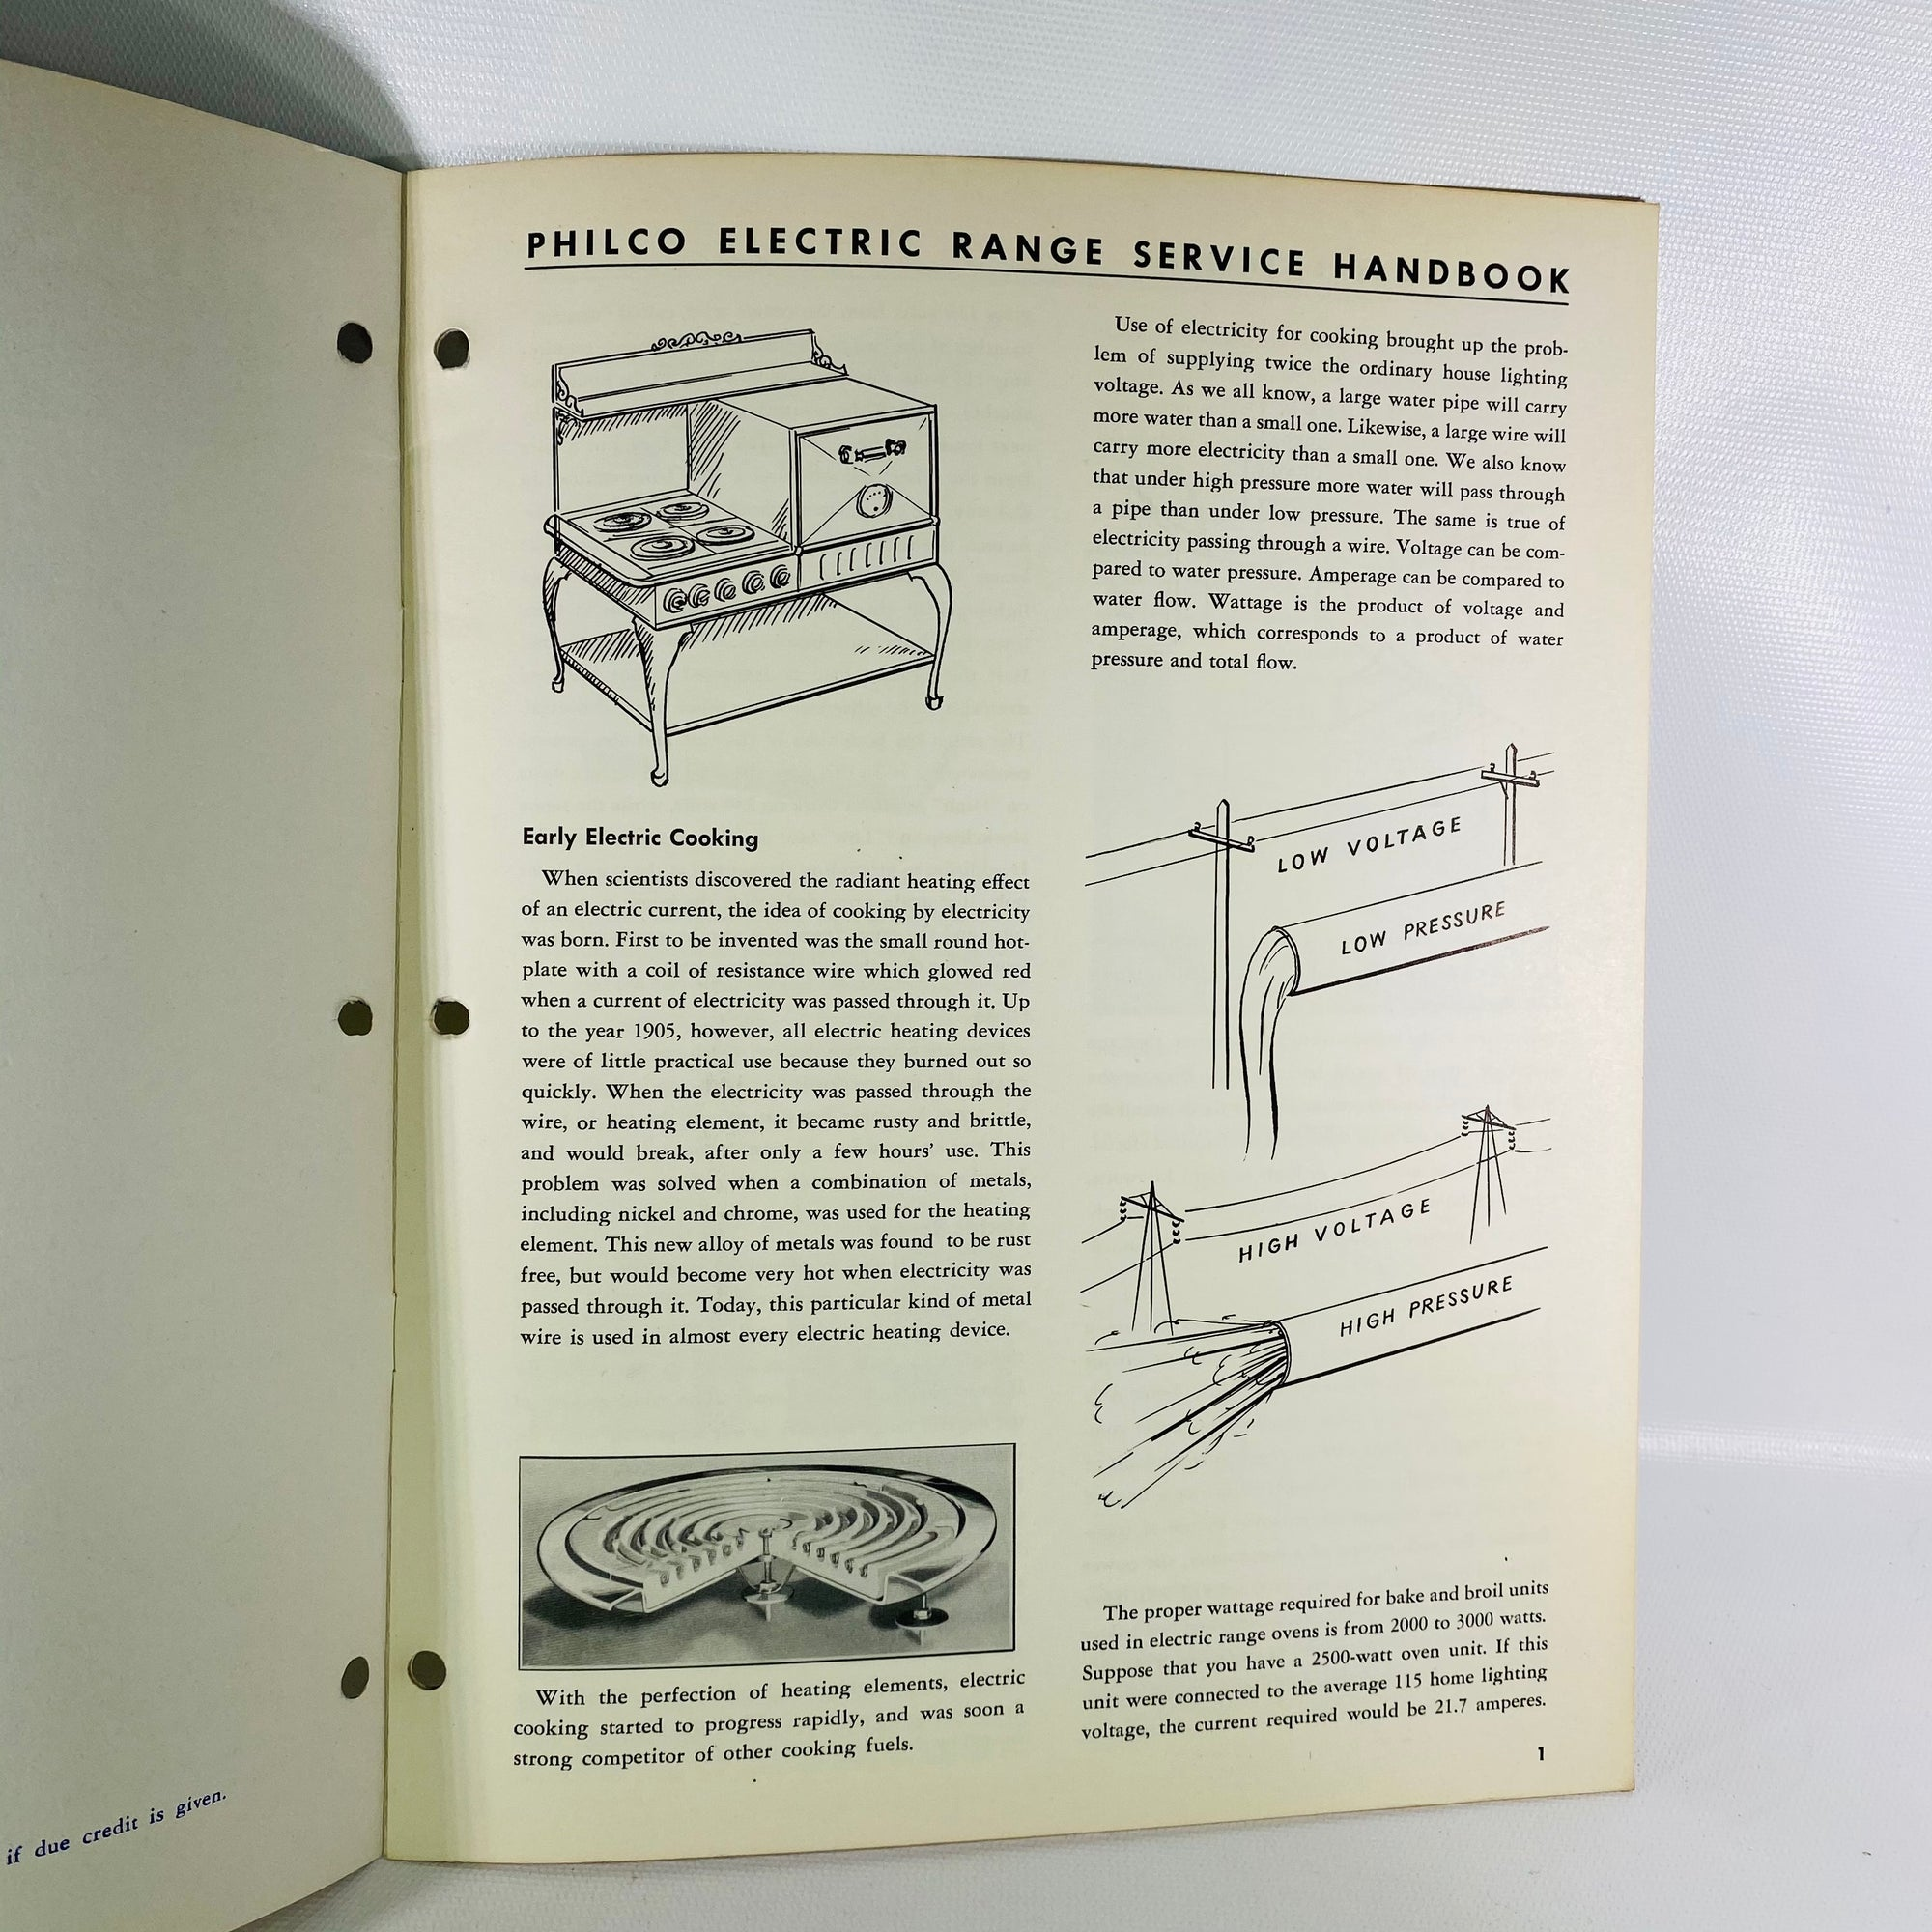 Philco Range Handbook PR-2134 Vol 1 1951 Philco Corp-Reading Vintage